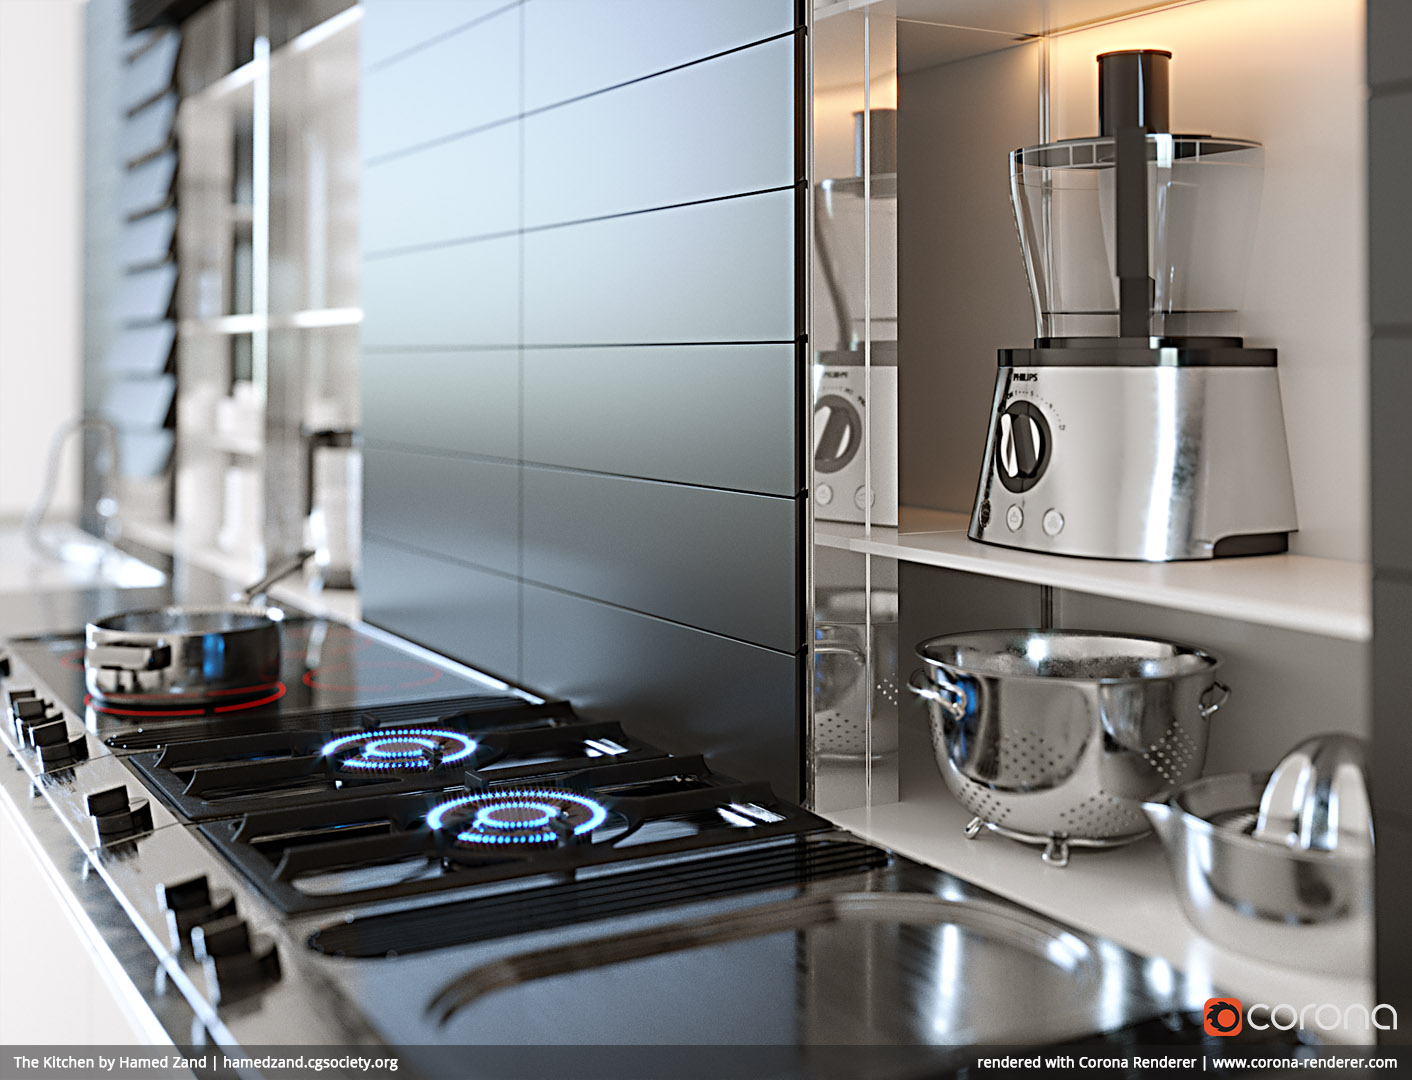 The Kitchen by Hamed Zand